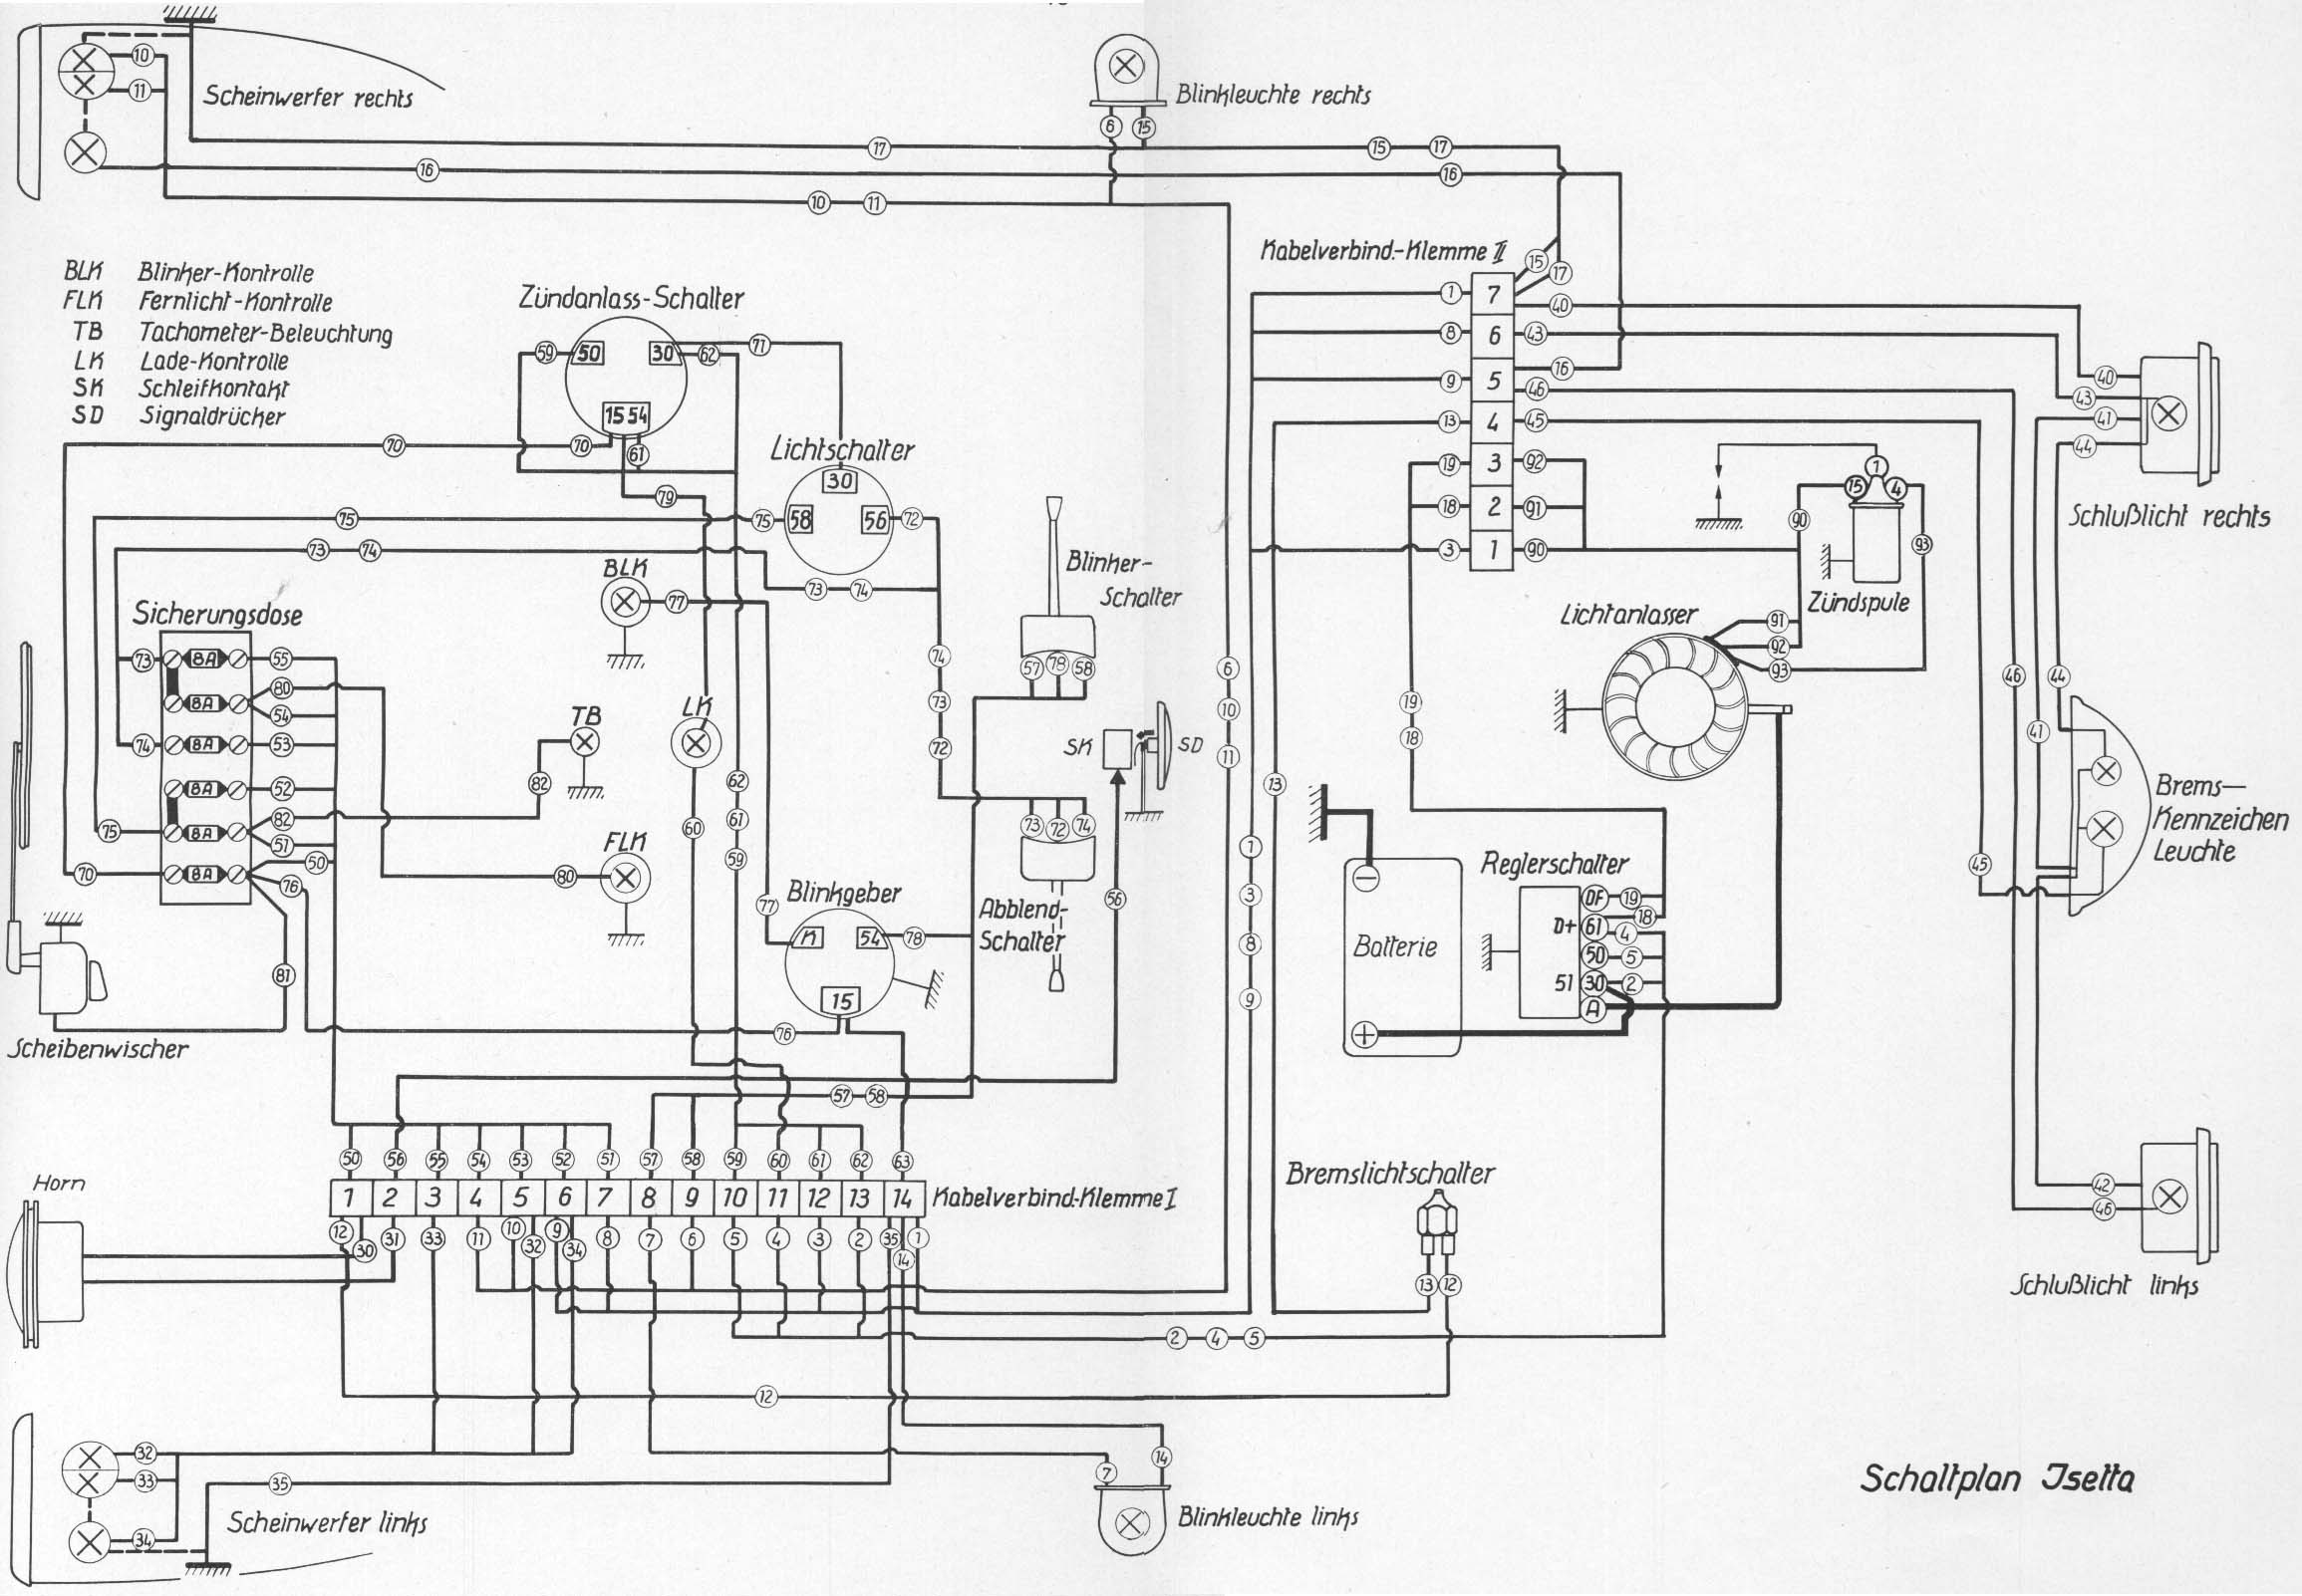 Wiring Diagram - 280kb file